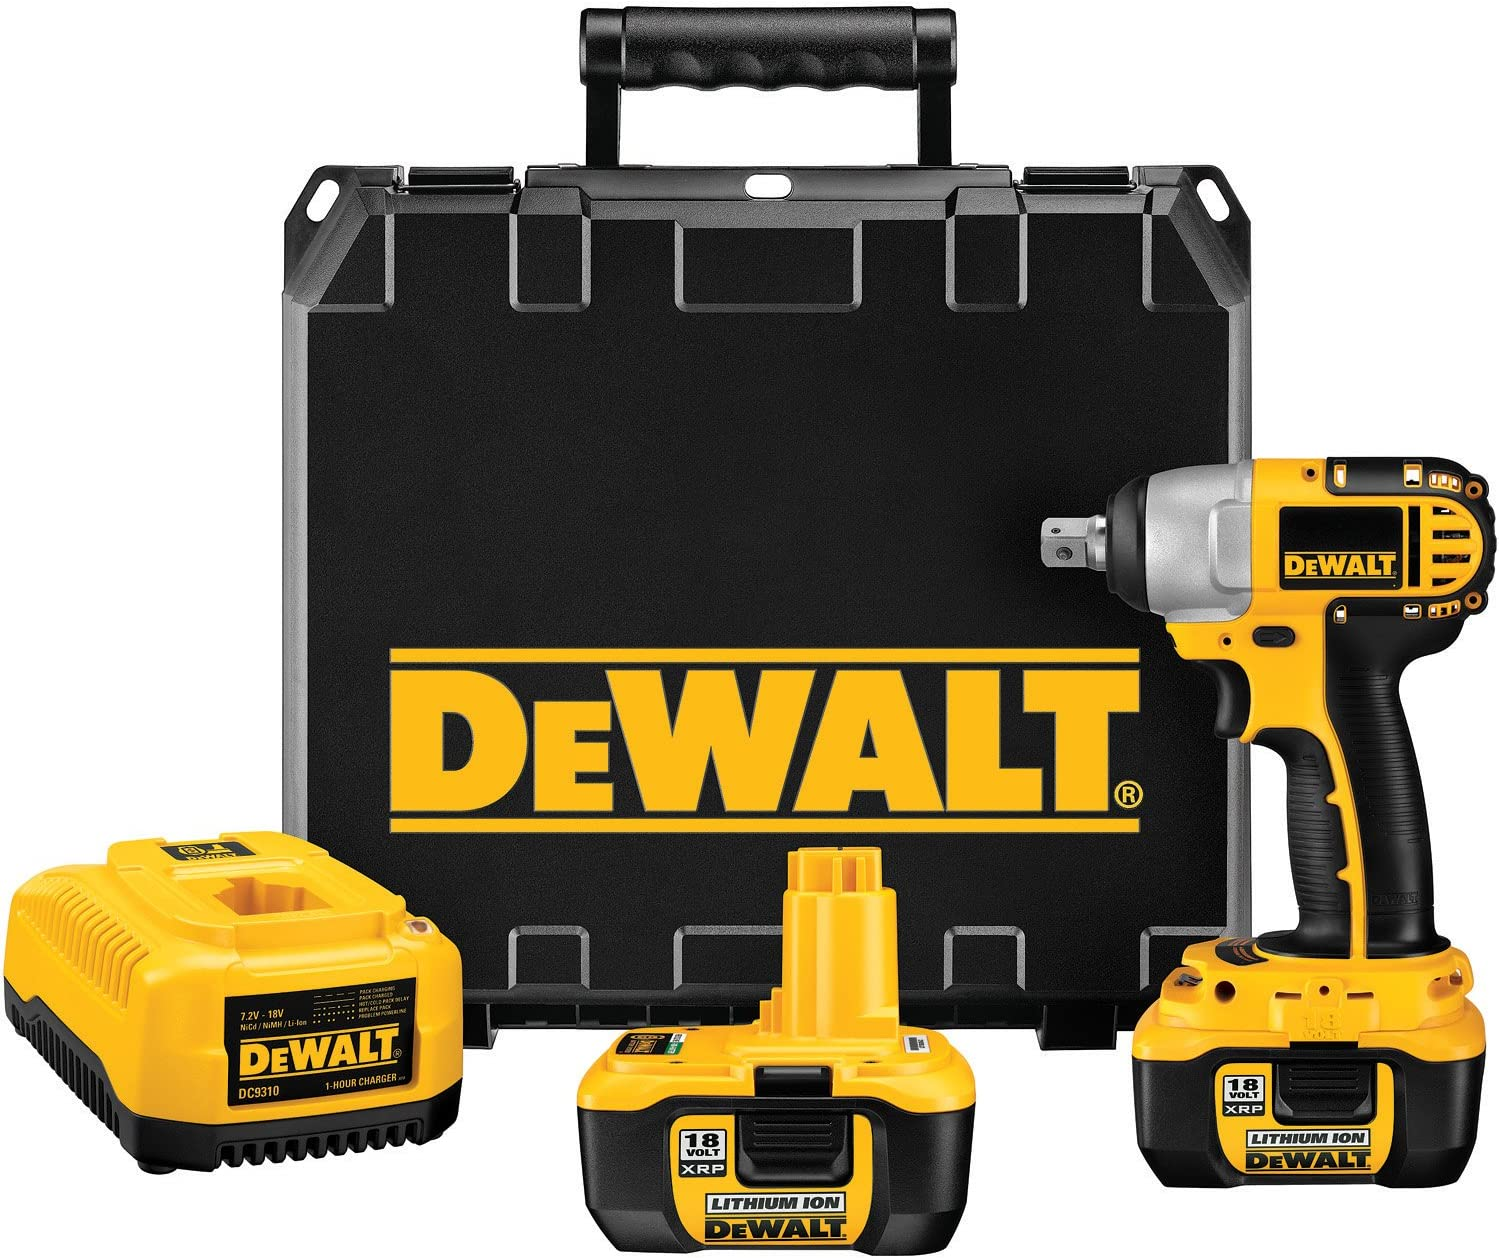 DEWALT DC822KL 18-Volt 1 2-inch Lithium Ion Cordless Impact Wrench with NANO Technology